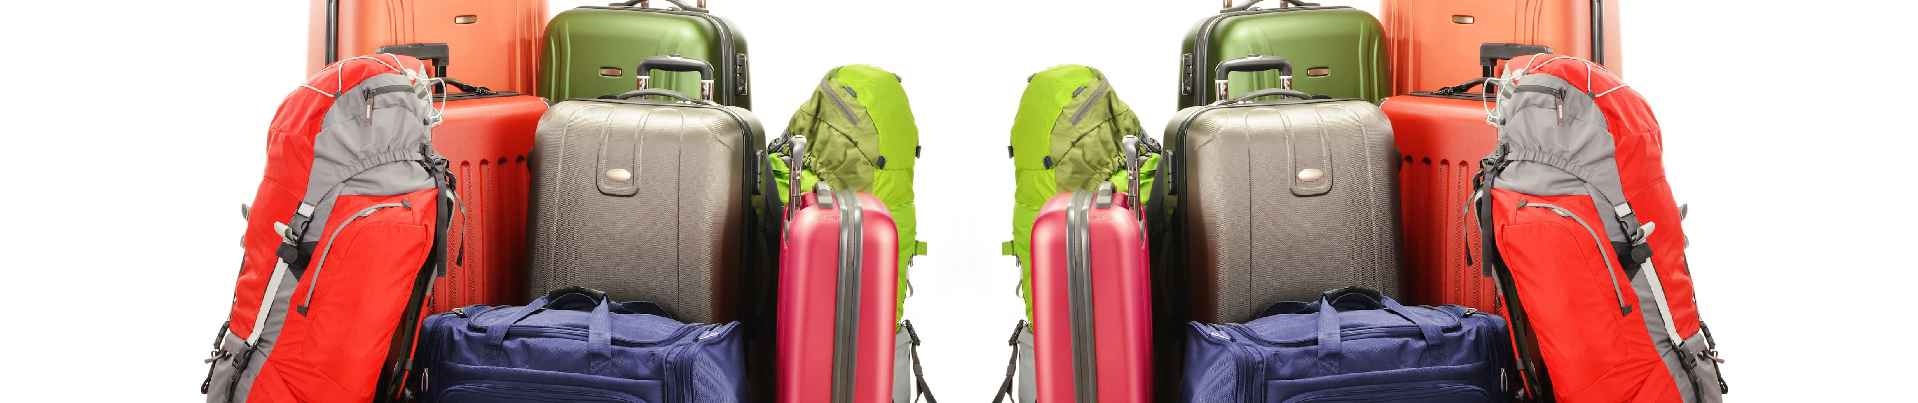 Store your luggage at Kenko Adventures for Free in Cusco Machu Picchu